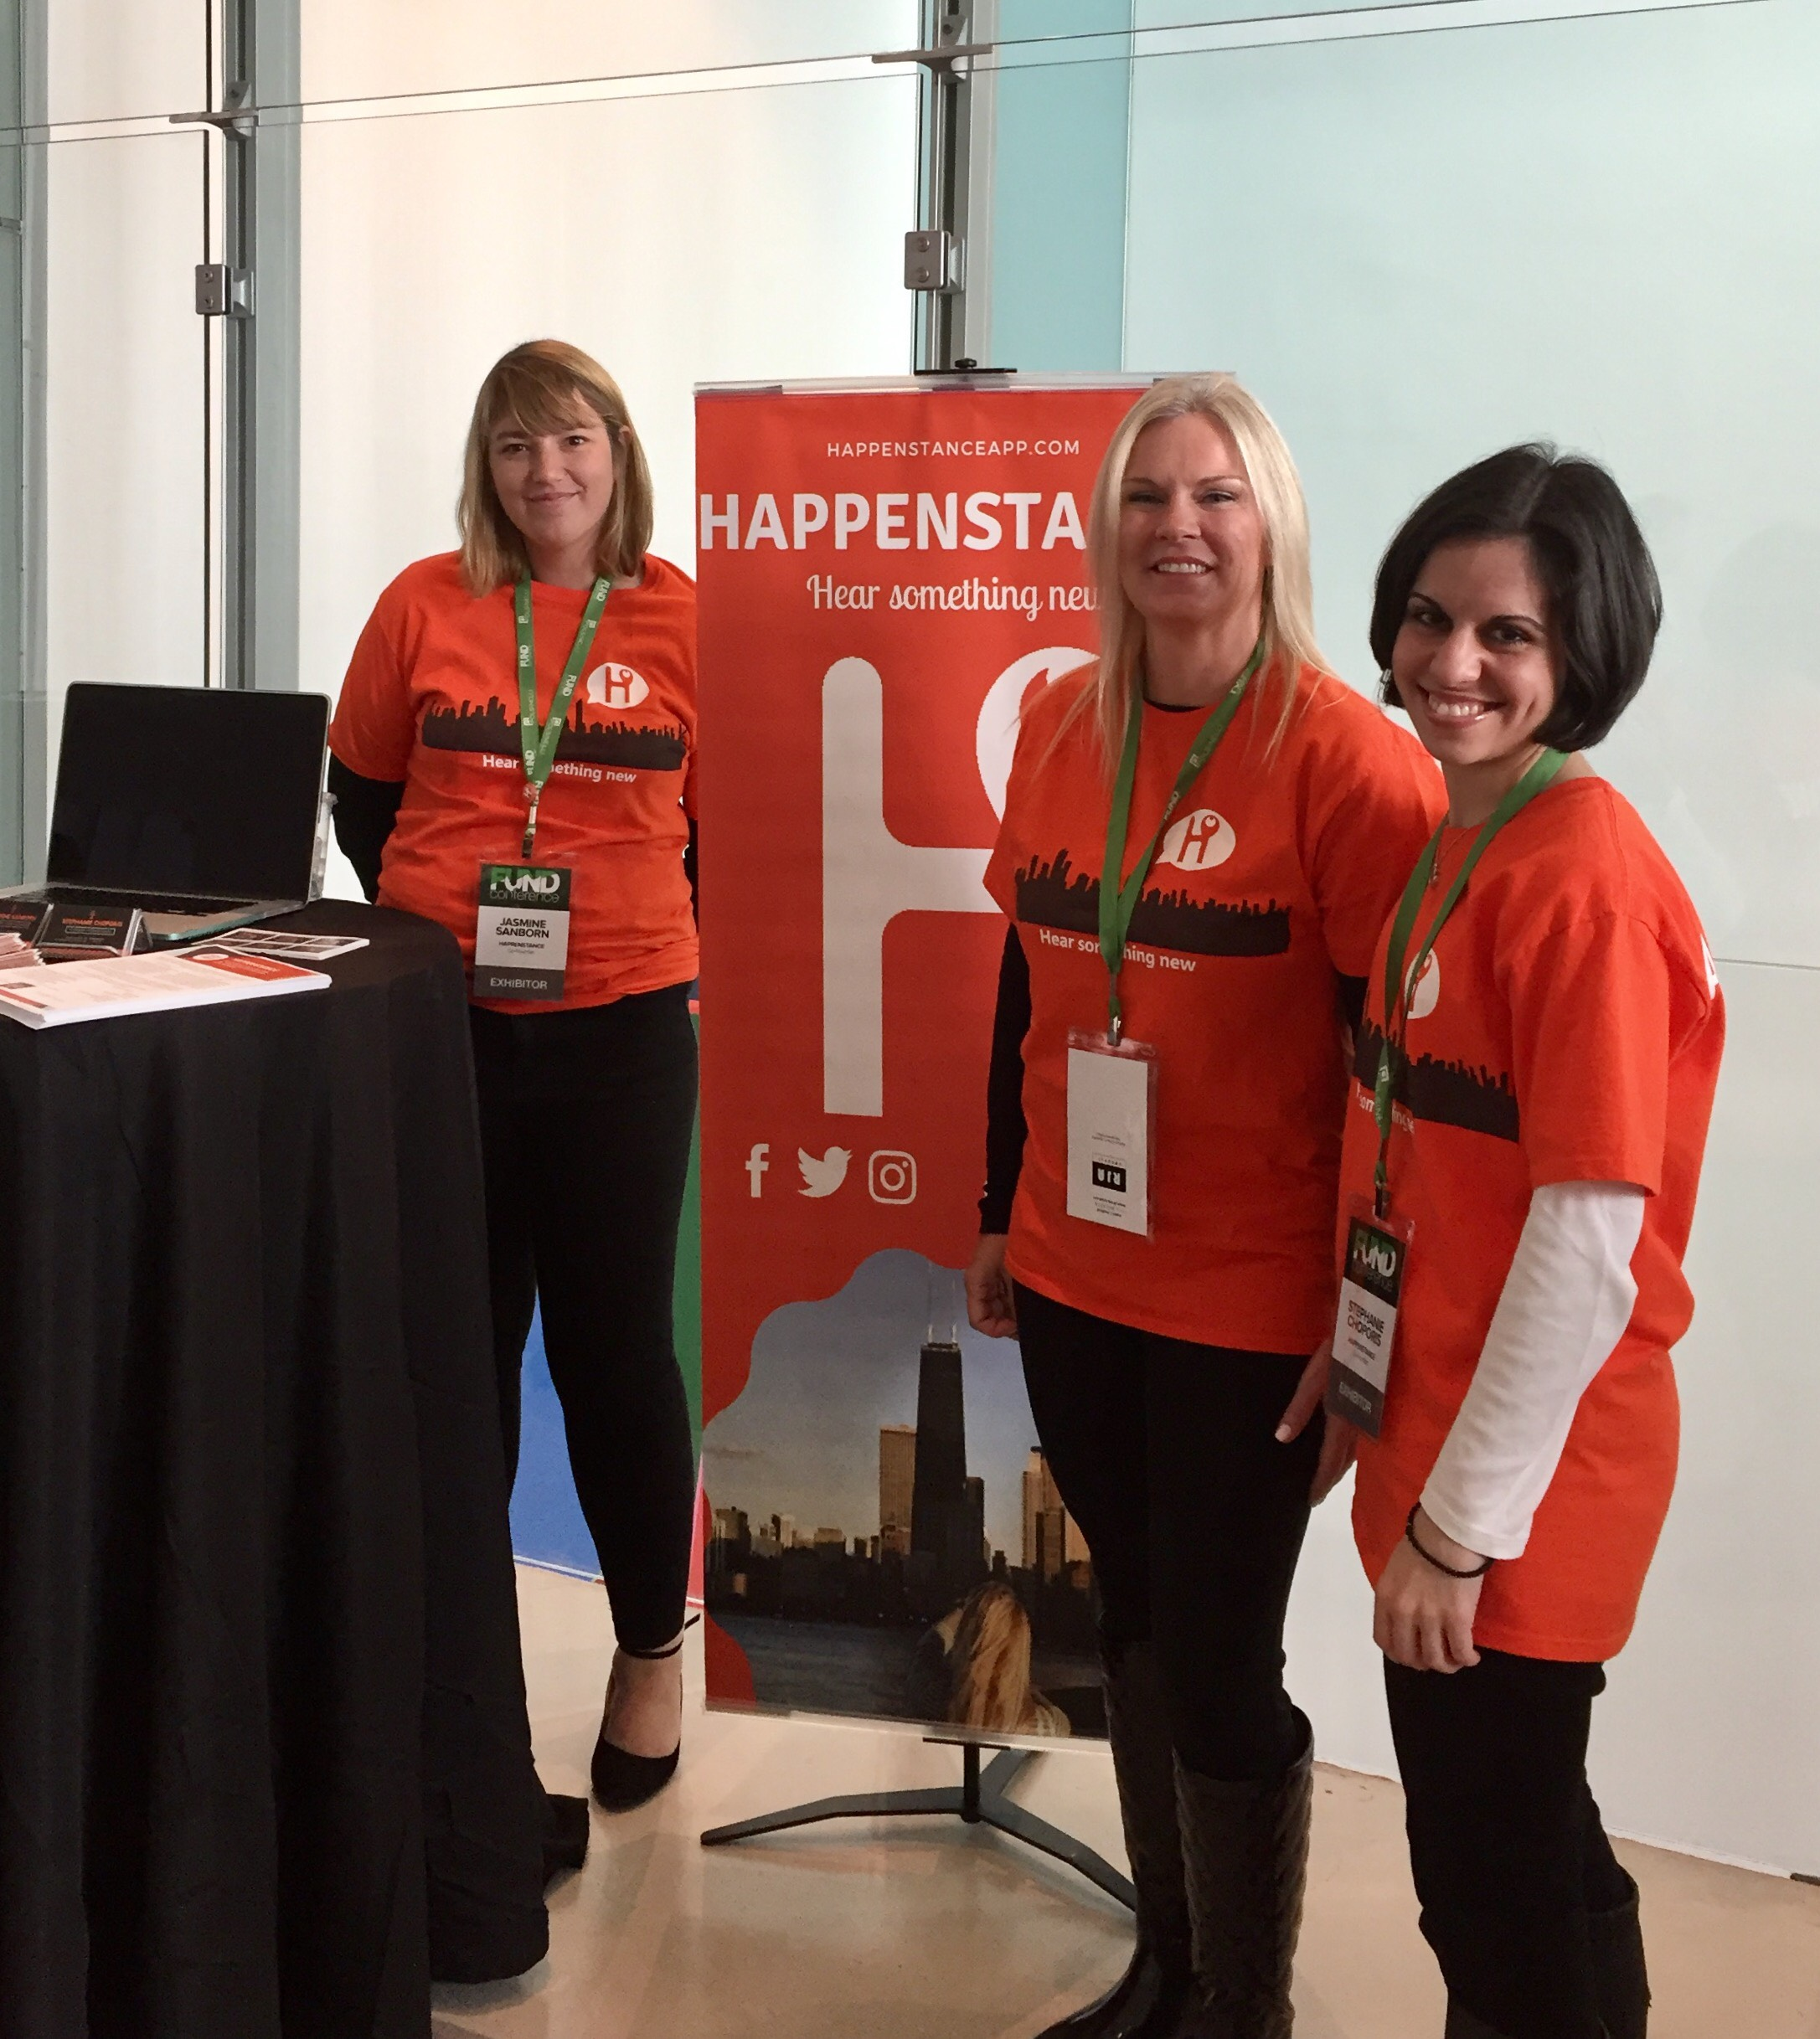 Exhibitor Spotlight on Happenstance